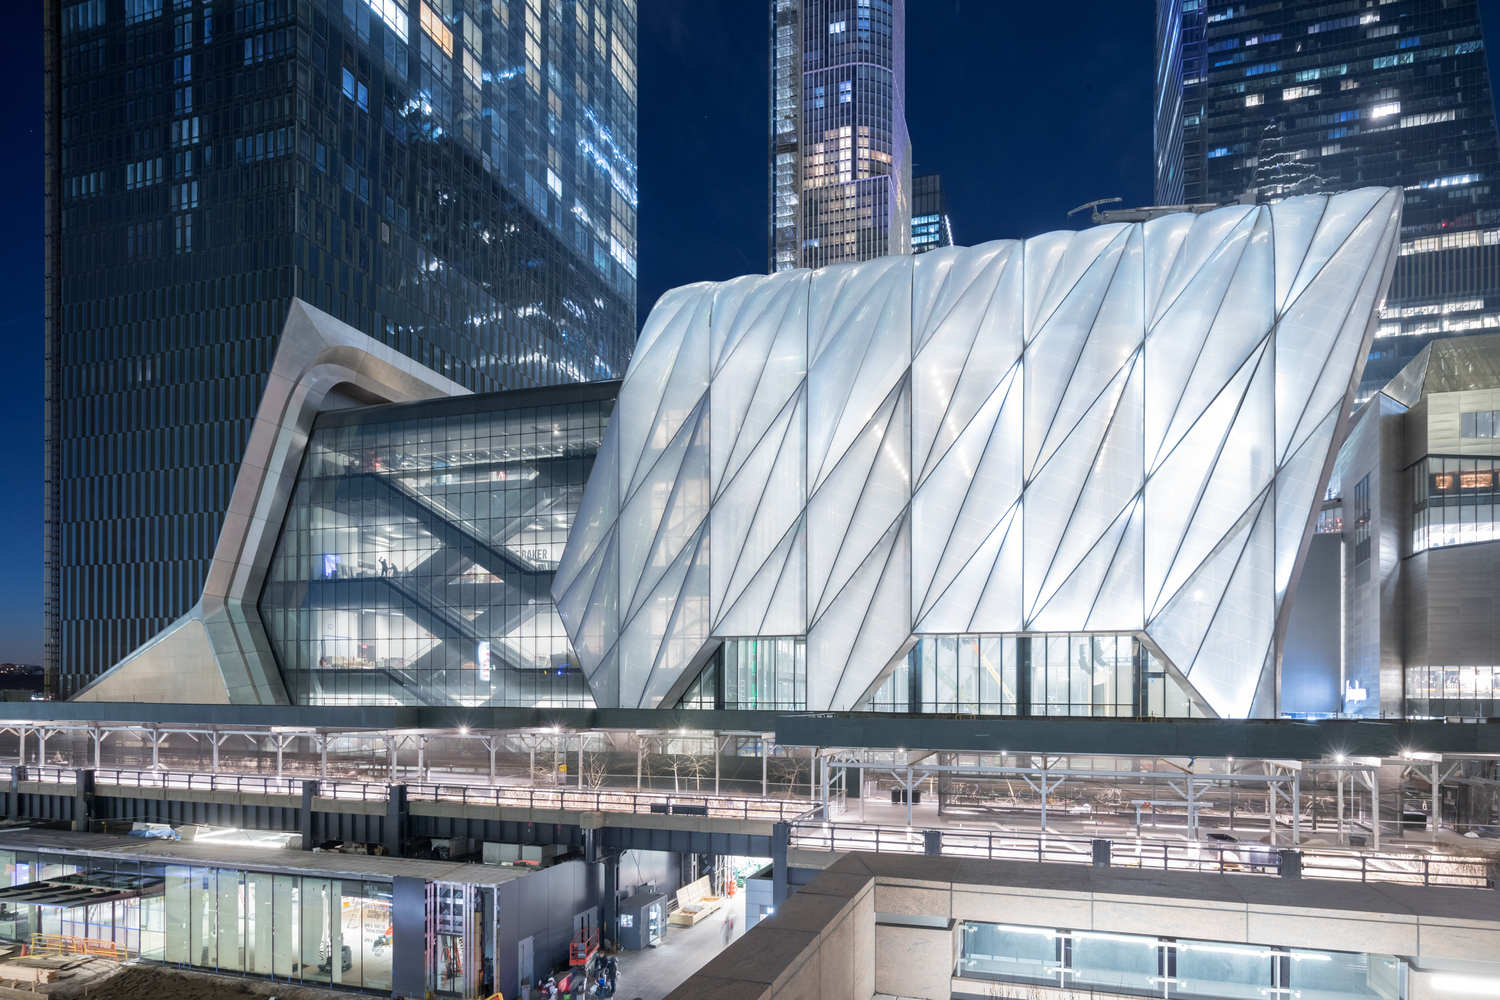 The Shed, a Center for the Arts / Diller Scofidio + Renfro  | Rockwell Group